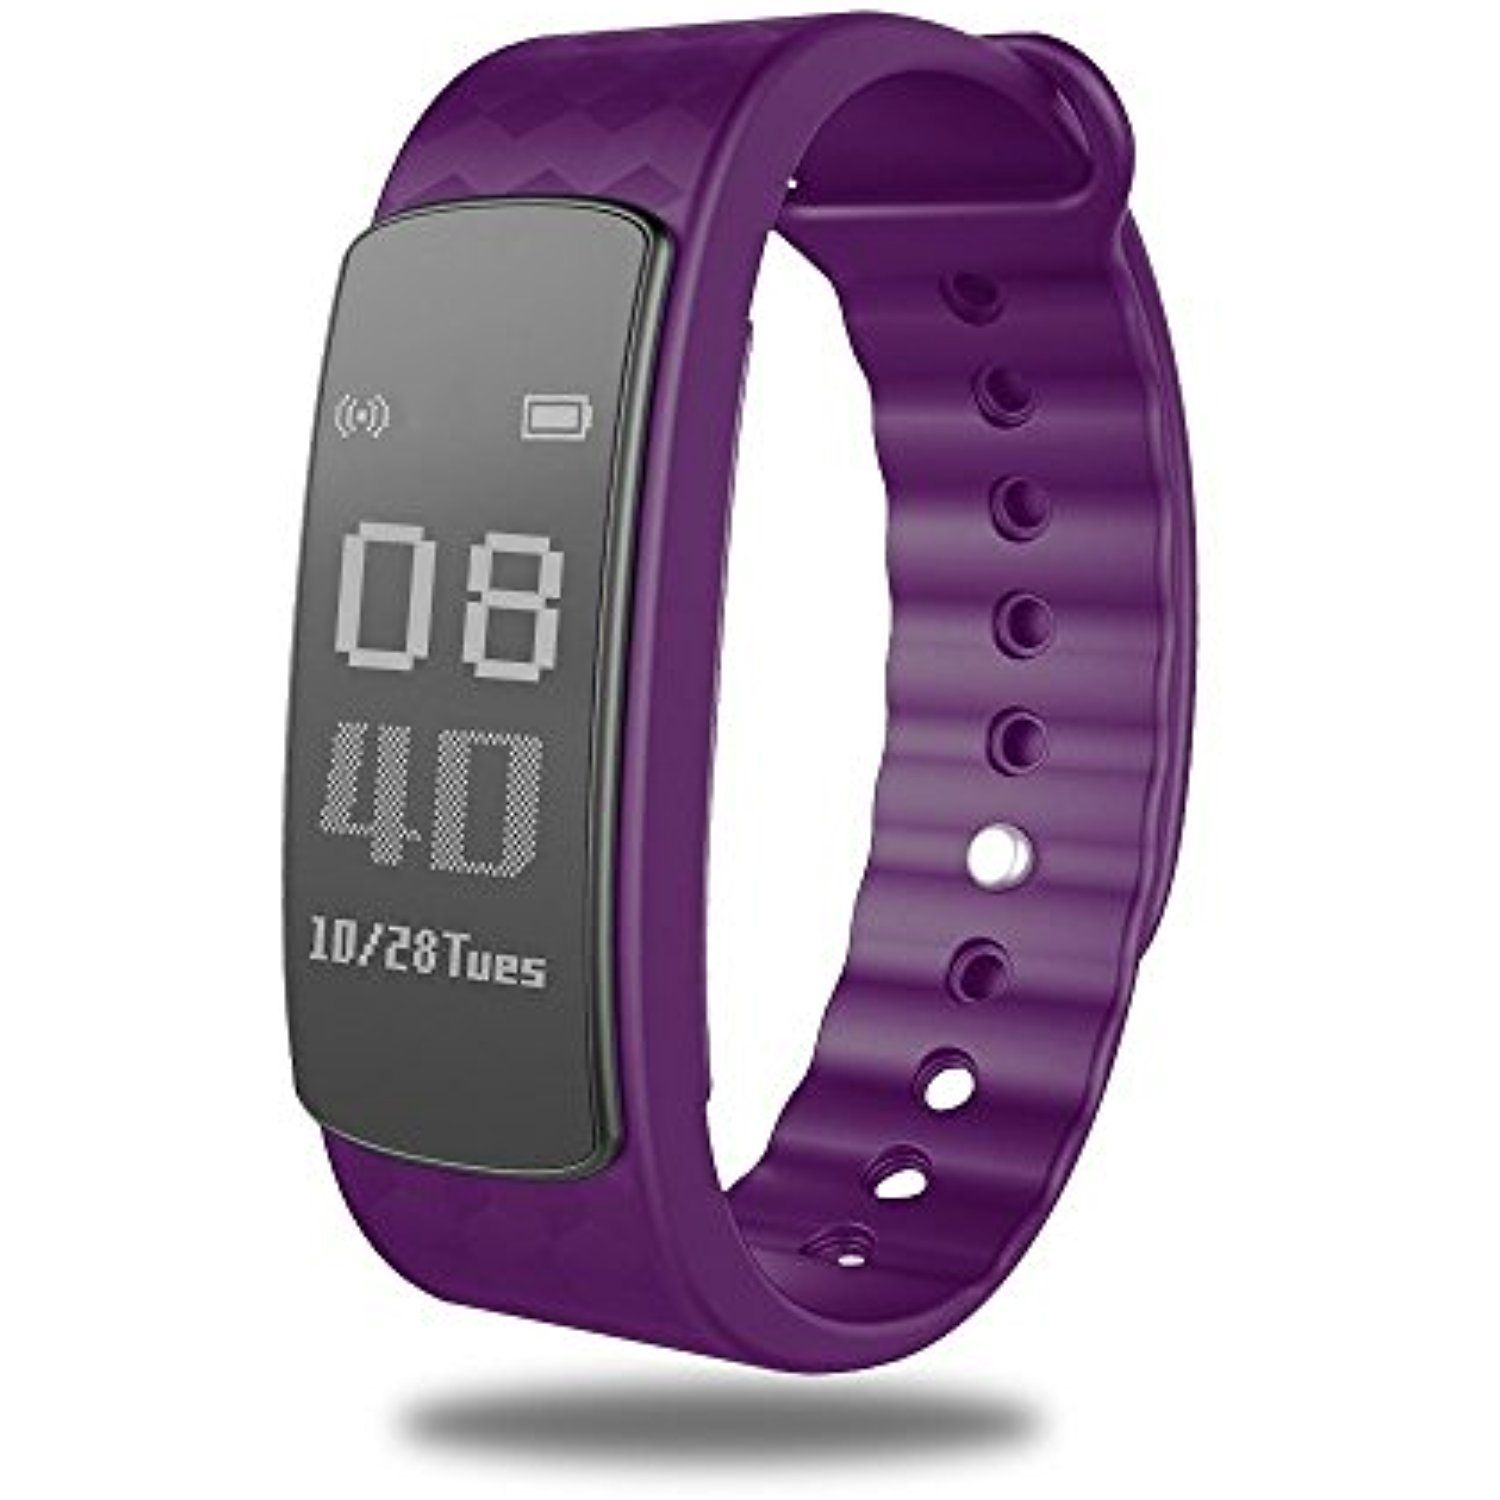 Kybeco Smart Fitness Wristband Activity Tracker Sleep